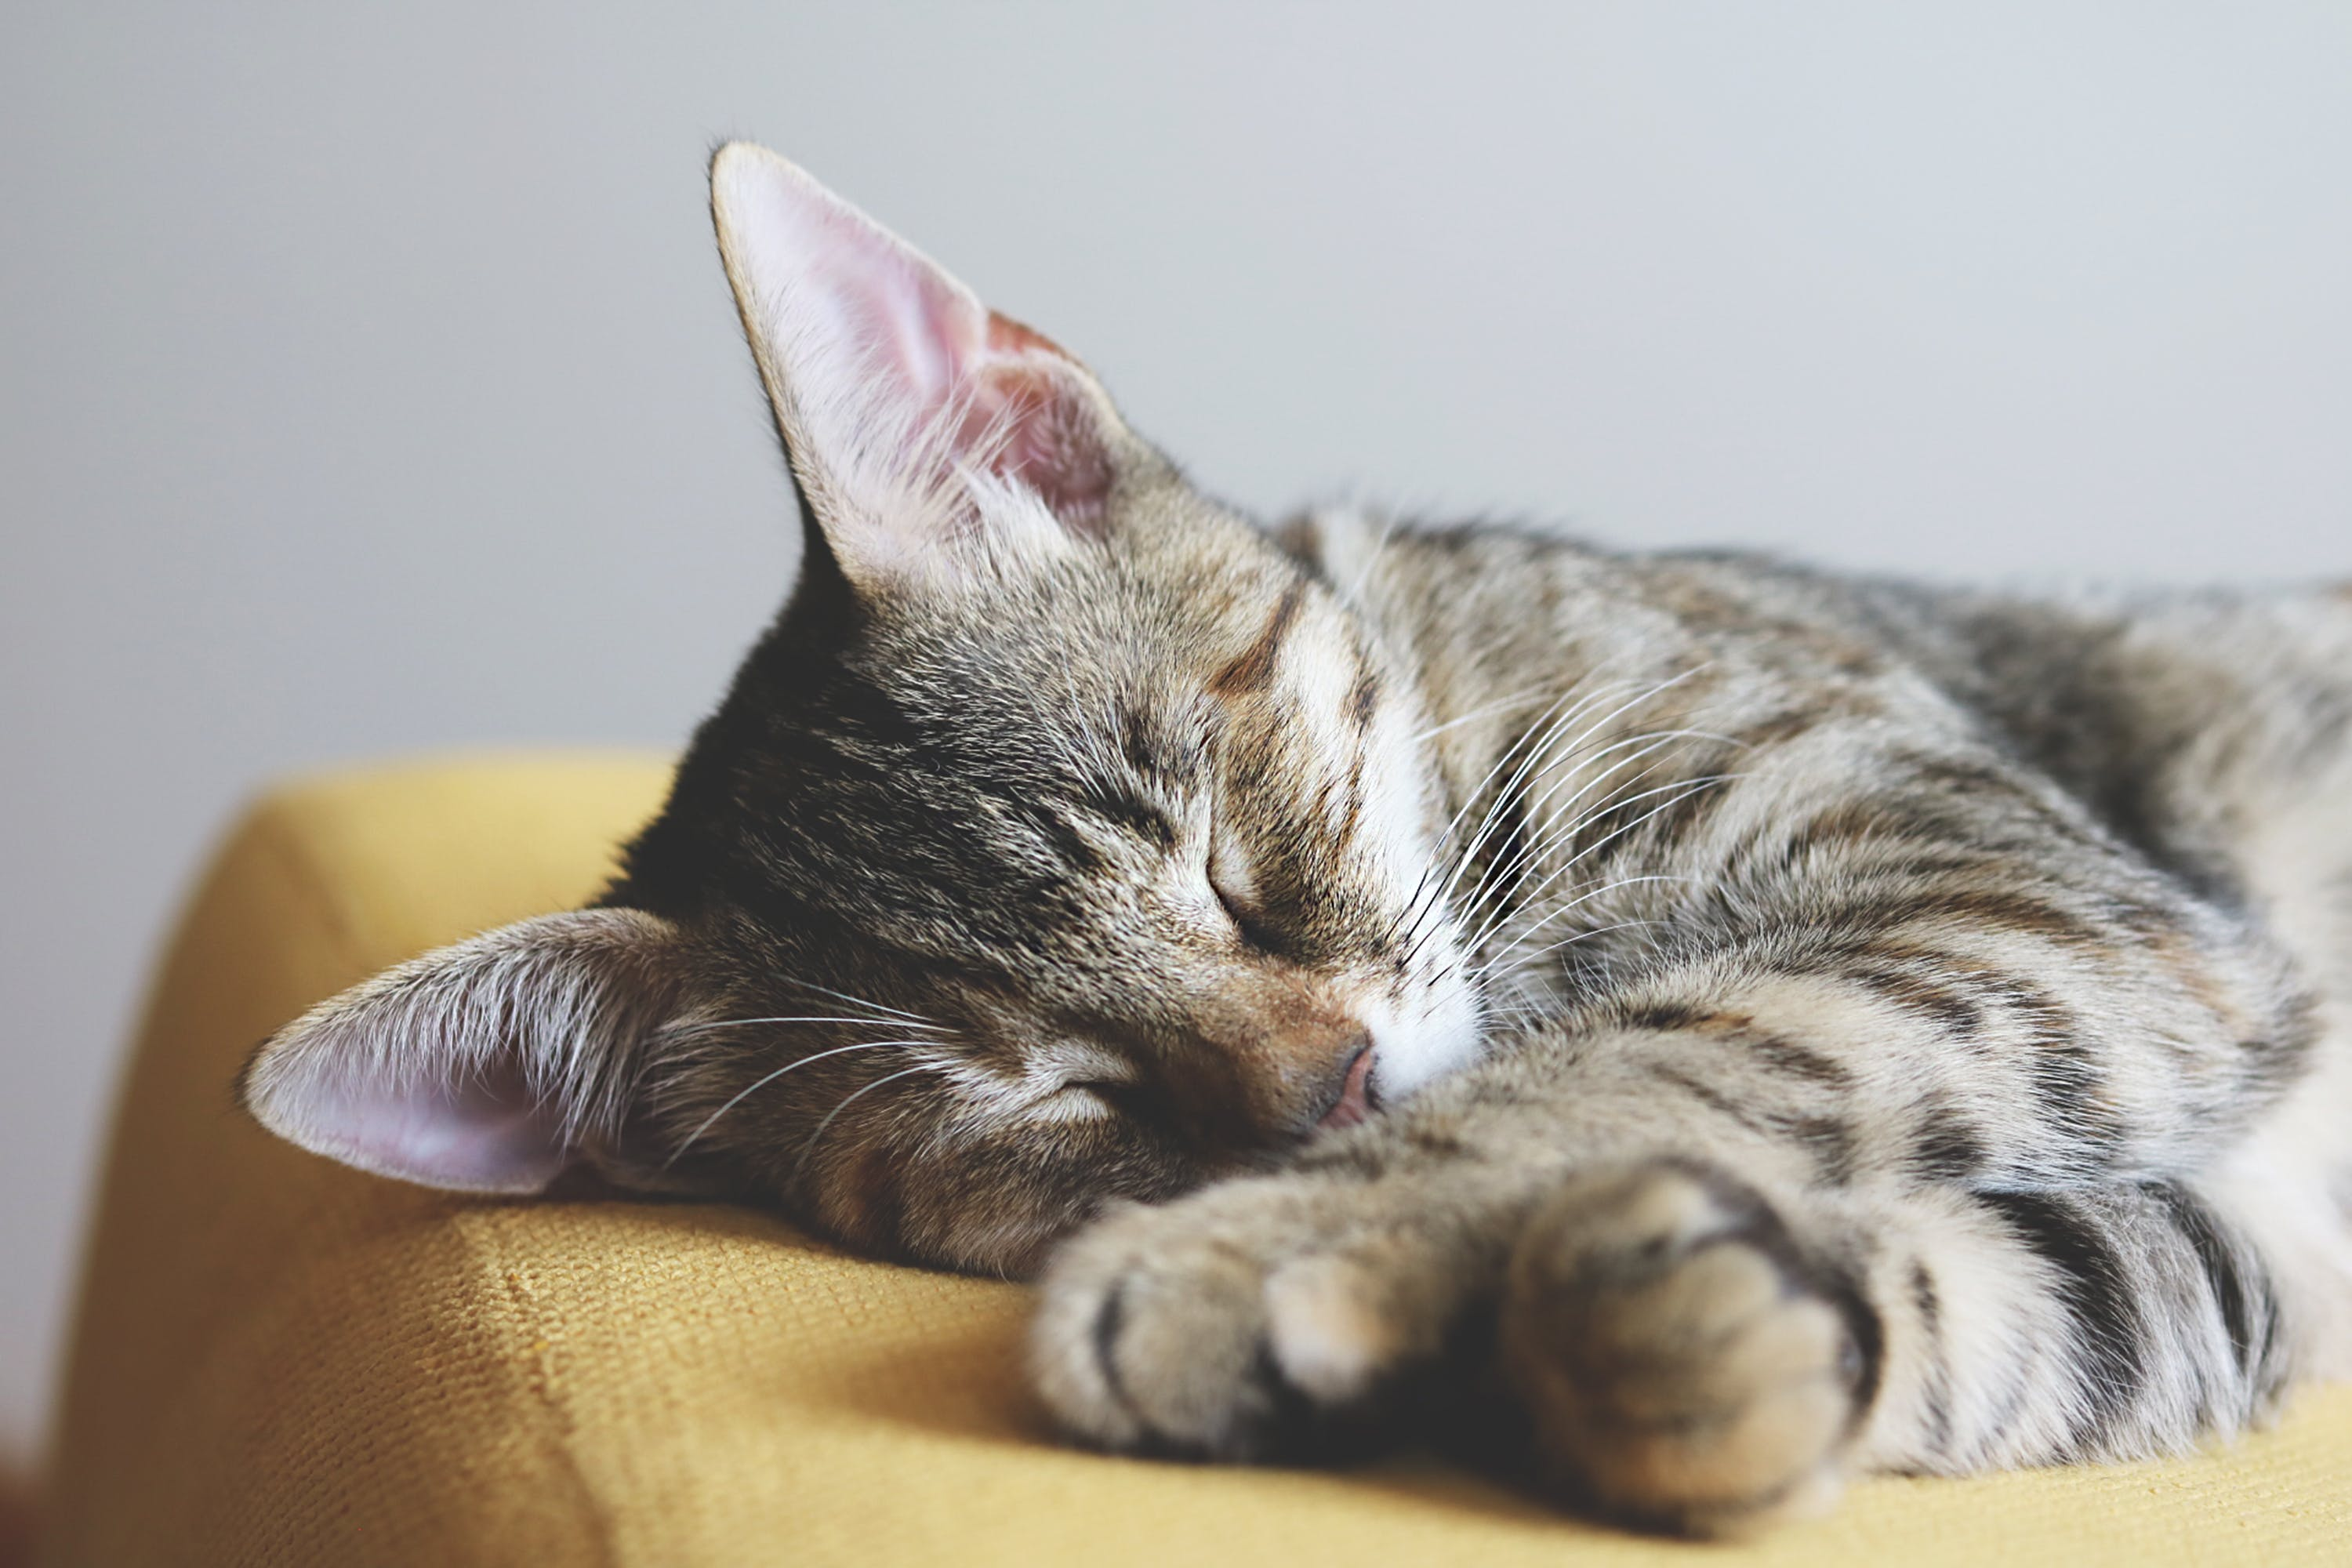 Close-up Photography of Gray Tabby Cat Sleeping on Yellow Textile